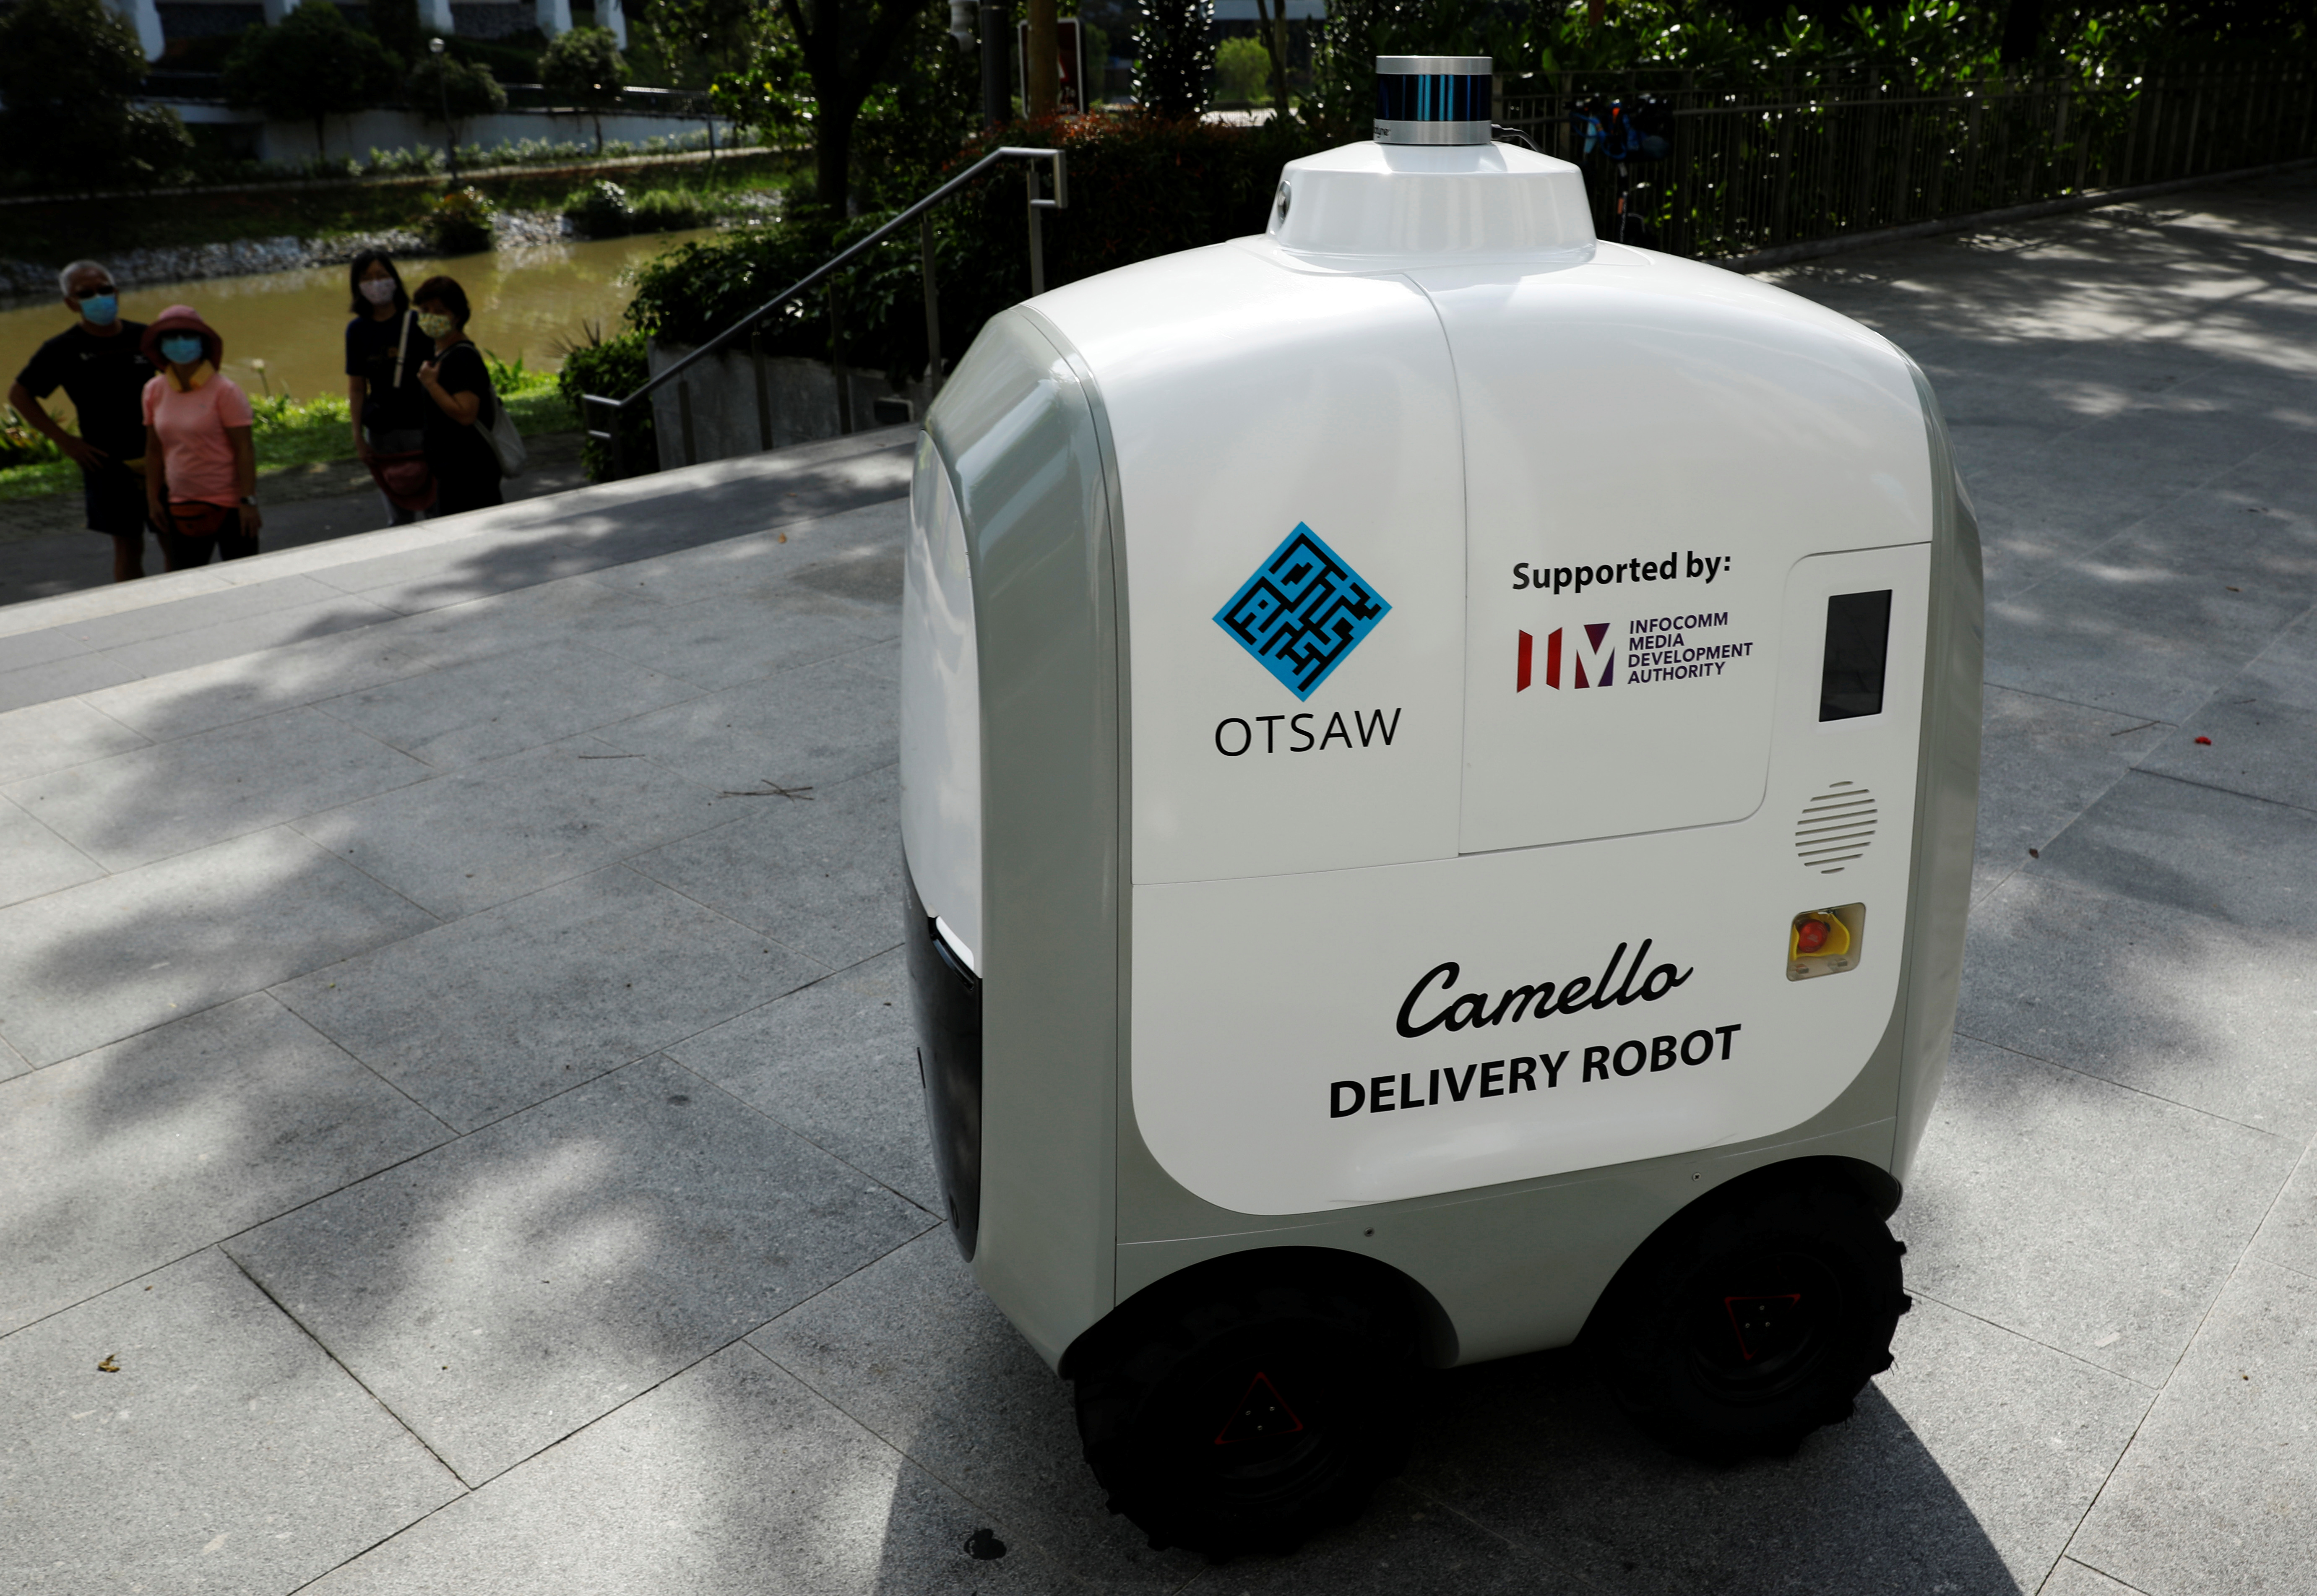 People look on as Camello, an autonomous grocery delivery robot, makes its way during a delivery in Singapore April 6, 2021. REUTERS/Edgar Su